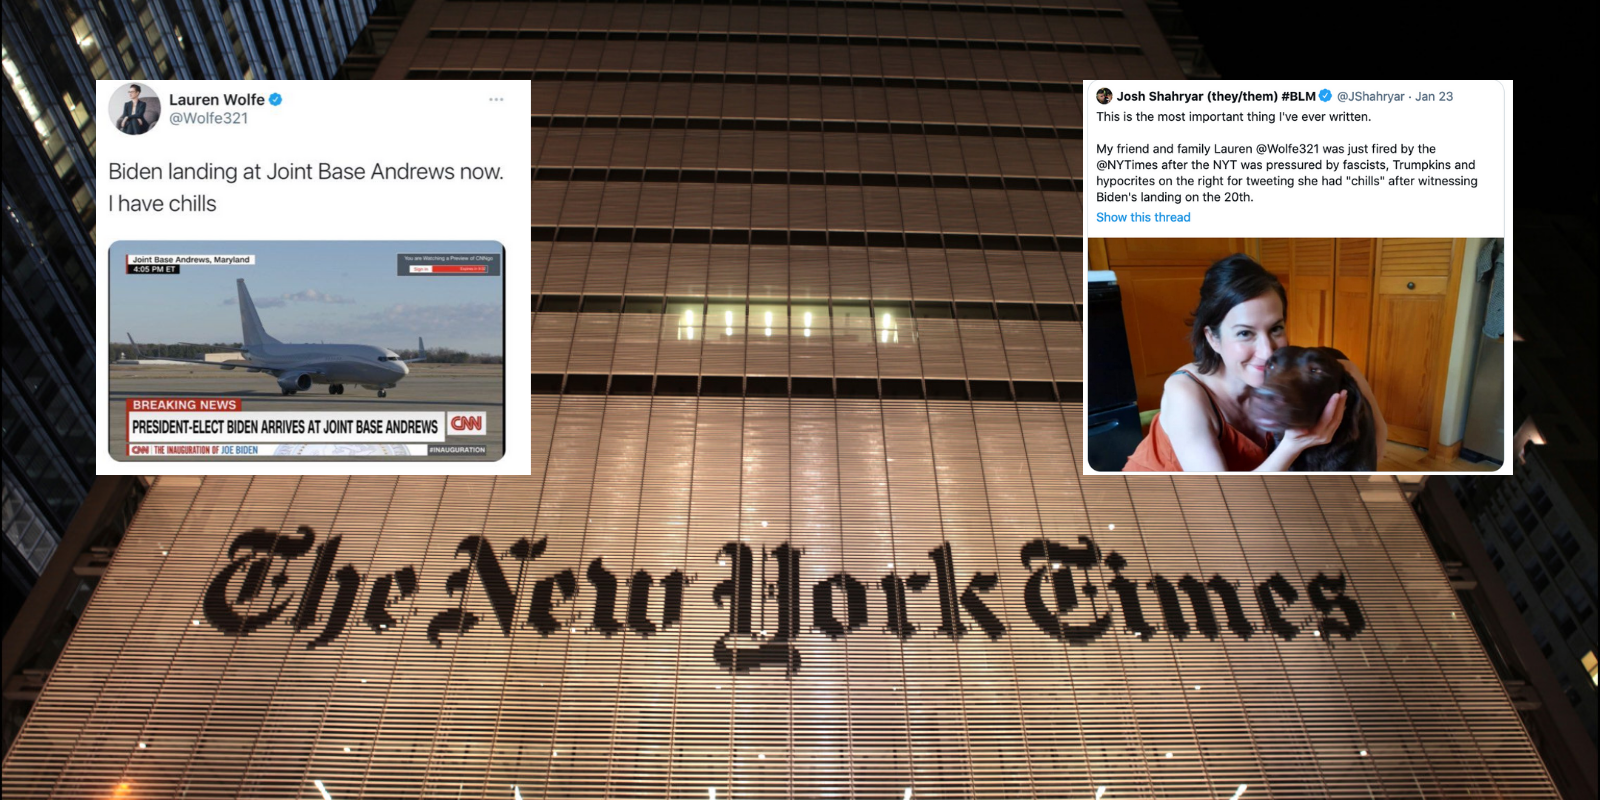 DEBUNKED: Liberal media falsely claims that a 'conservative mob' got a NYT editor fired